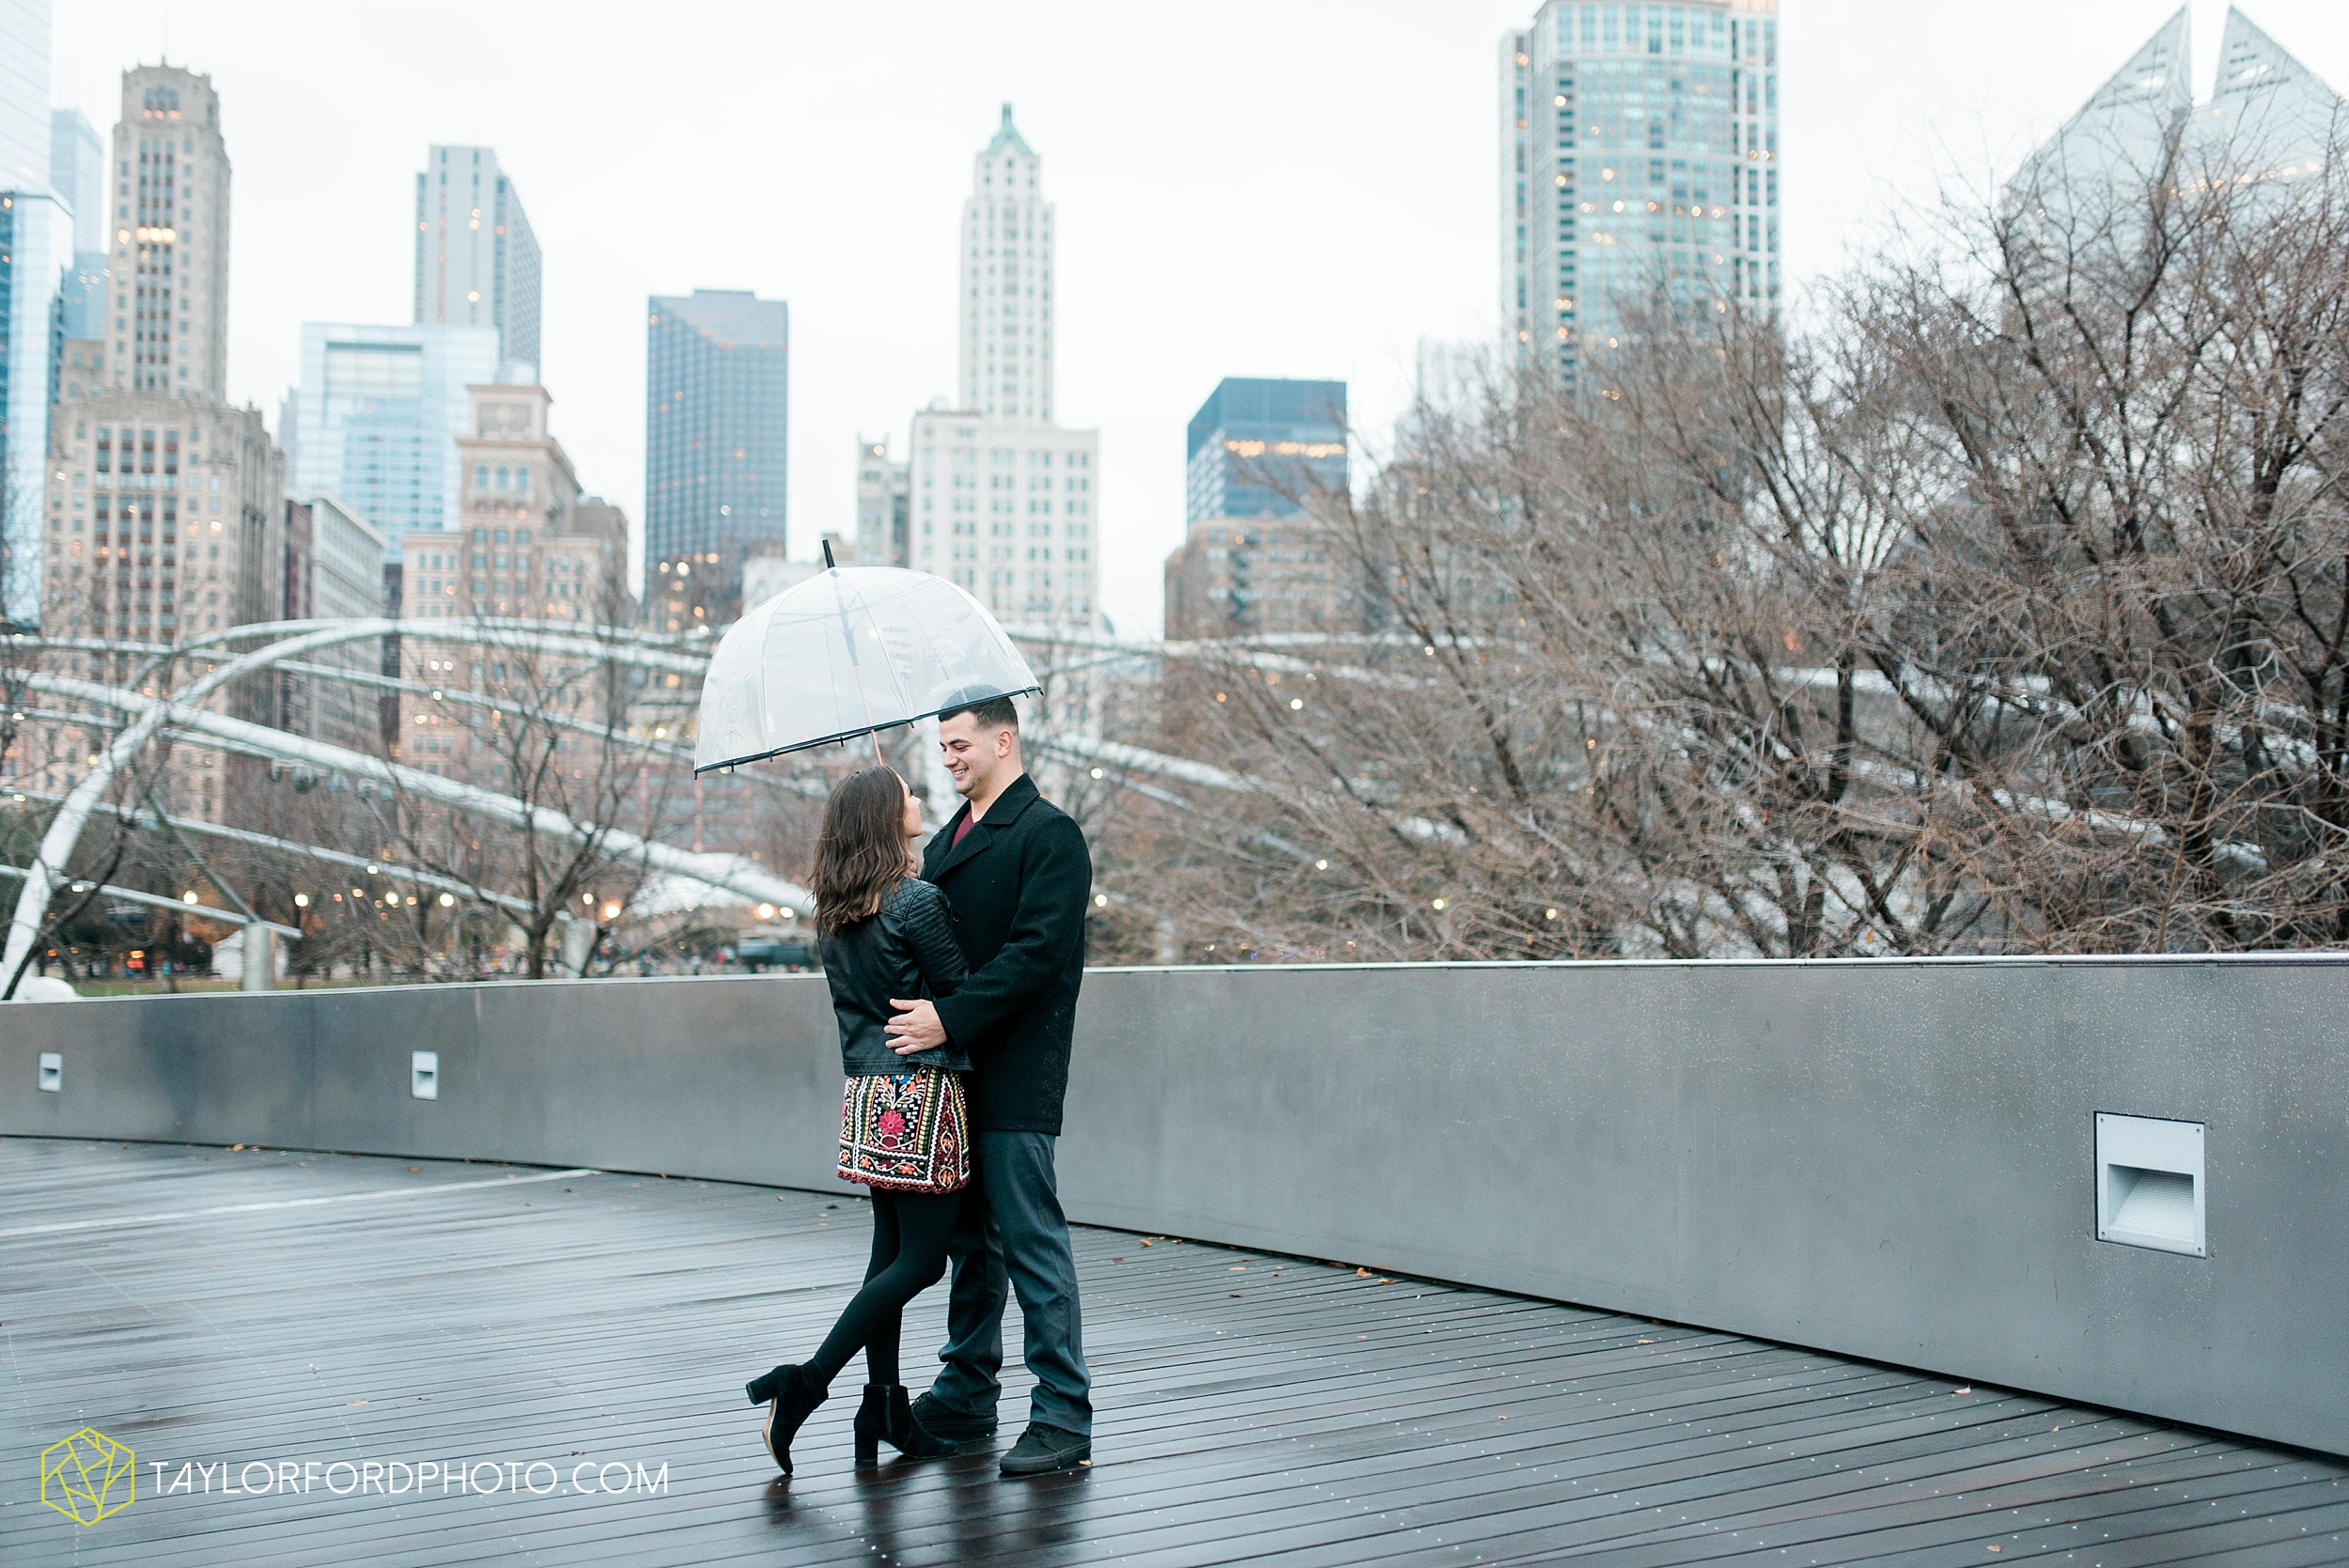 chicago-illinois-engagement-lincoln-park-zoo-downtown-millenium-park-cloud-gate-photographer-Taylor-Ford-Photography_6050.jpg